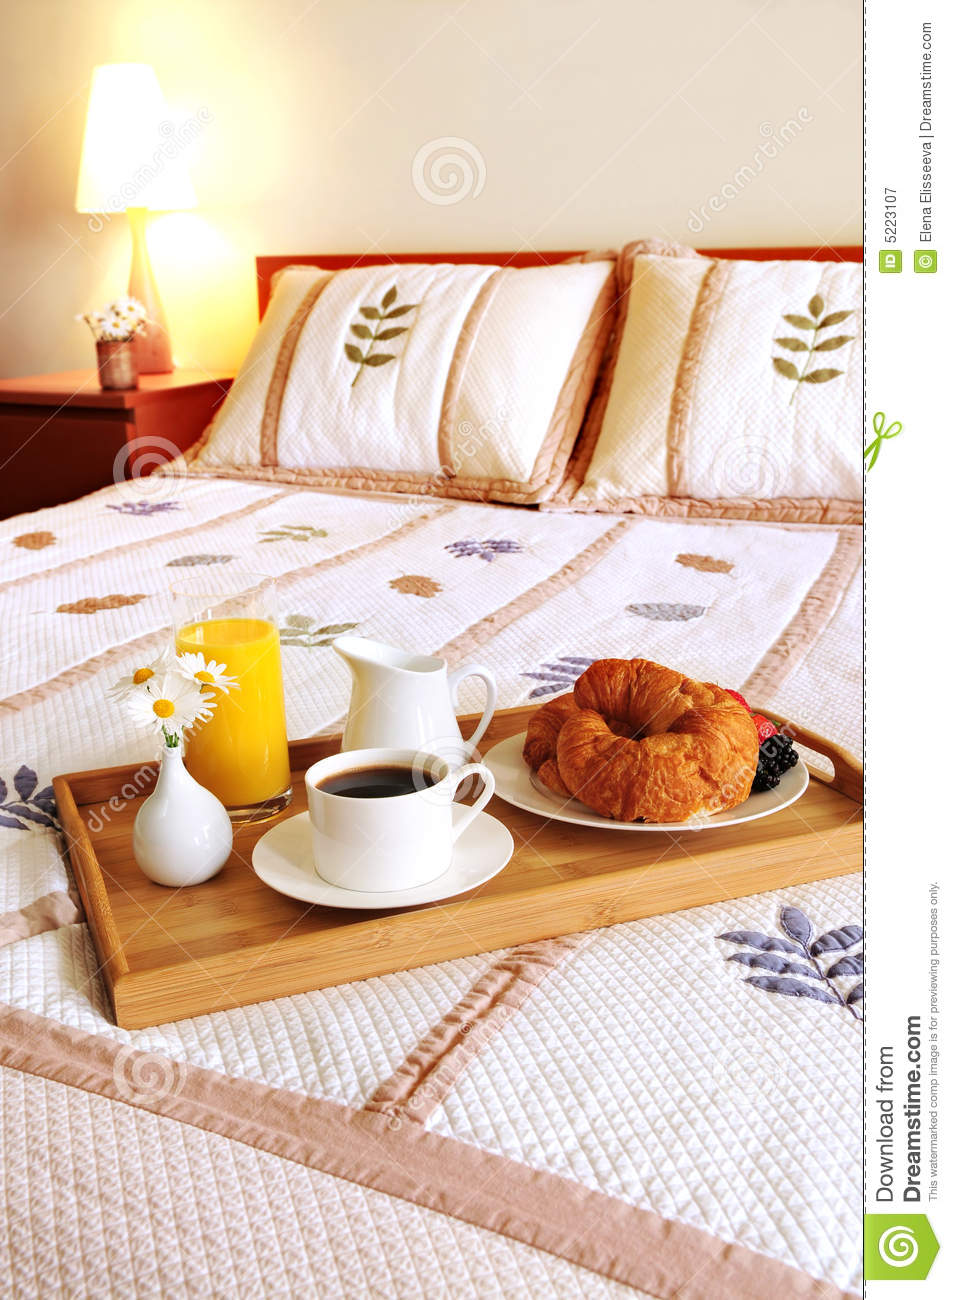 Breakfast On A Bed In A Hotel Room Royalty Free Stock ...